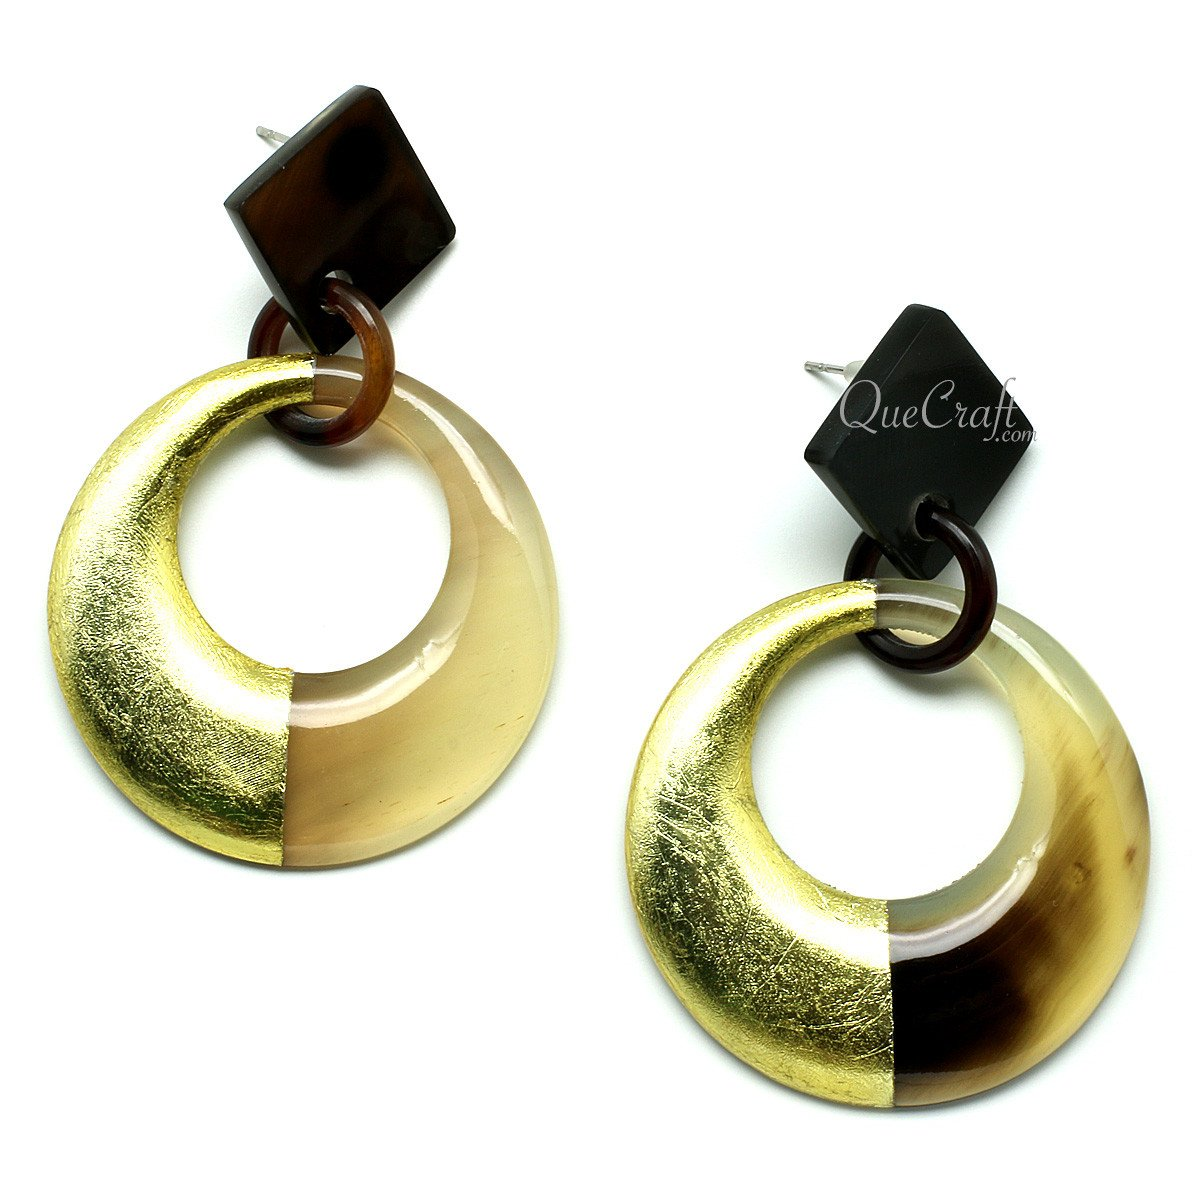 Horn & Lacquer Earrings #11978 - HORN.JEWELRY by QueCraft